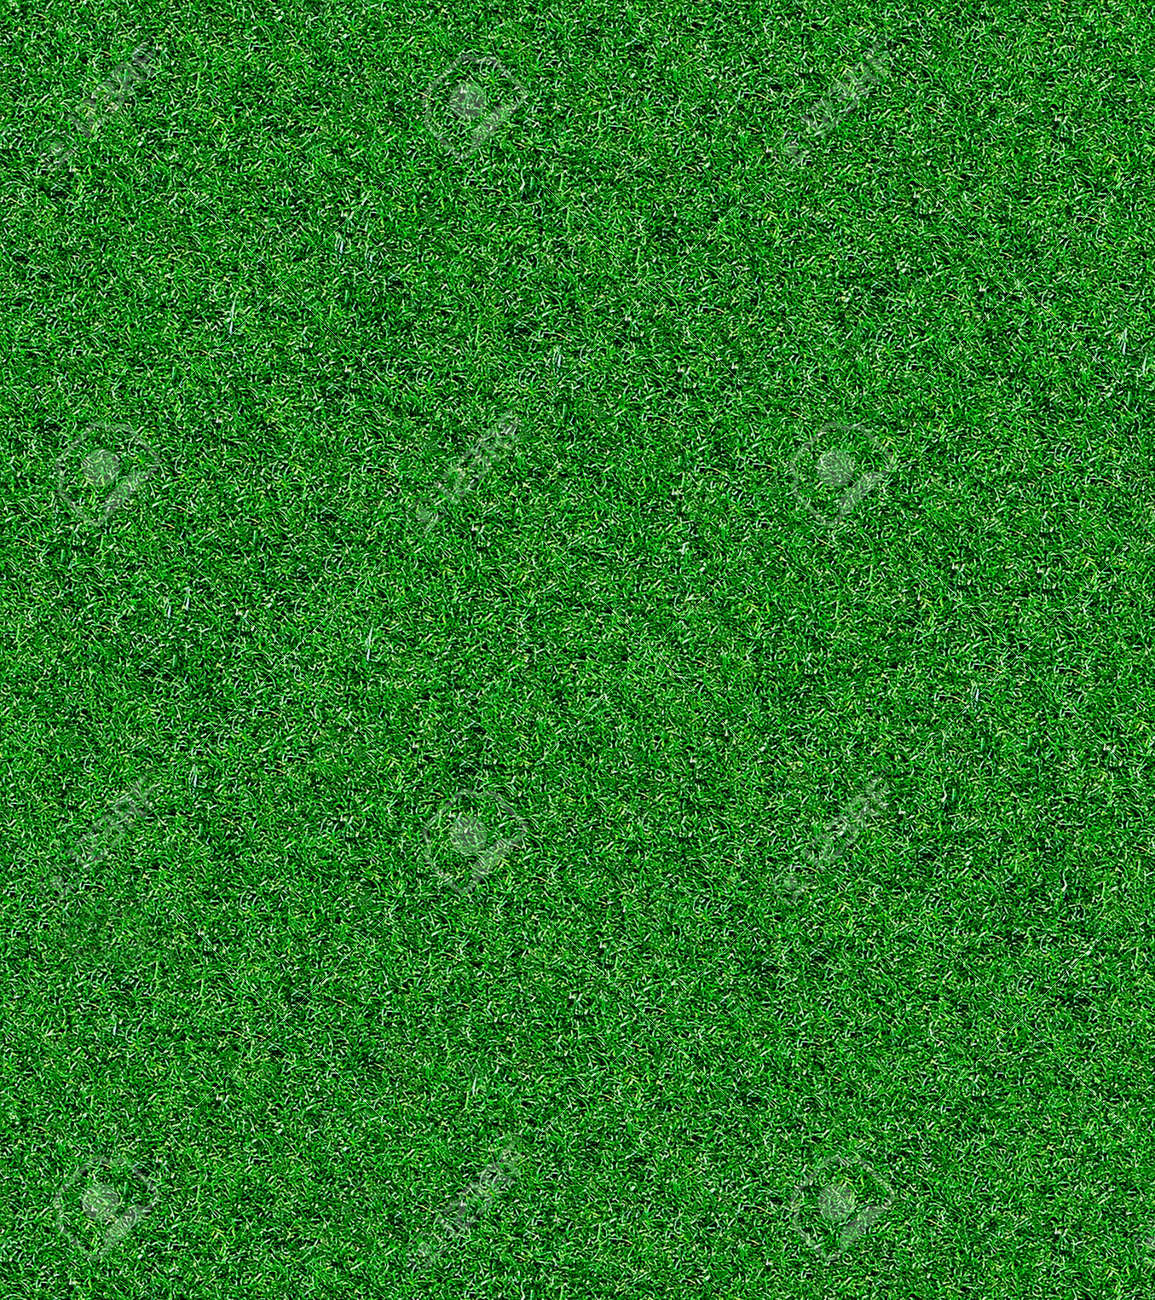 Artificial Grass for indoor sports Stock Photo - 531277